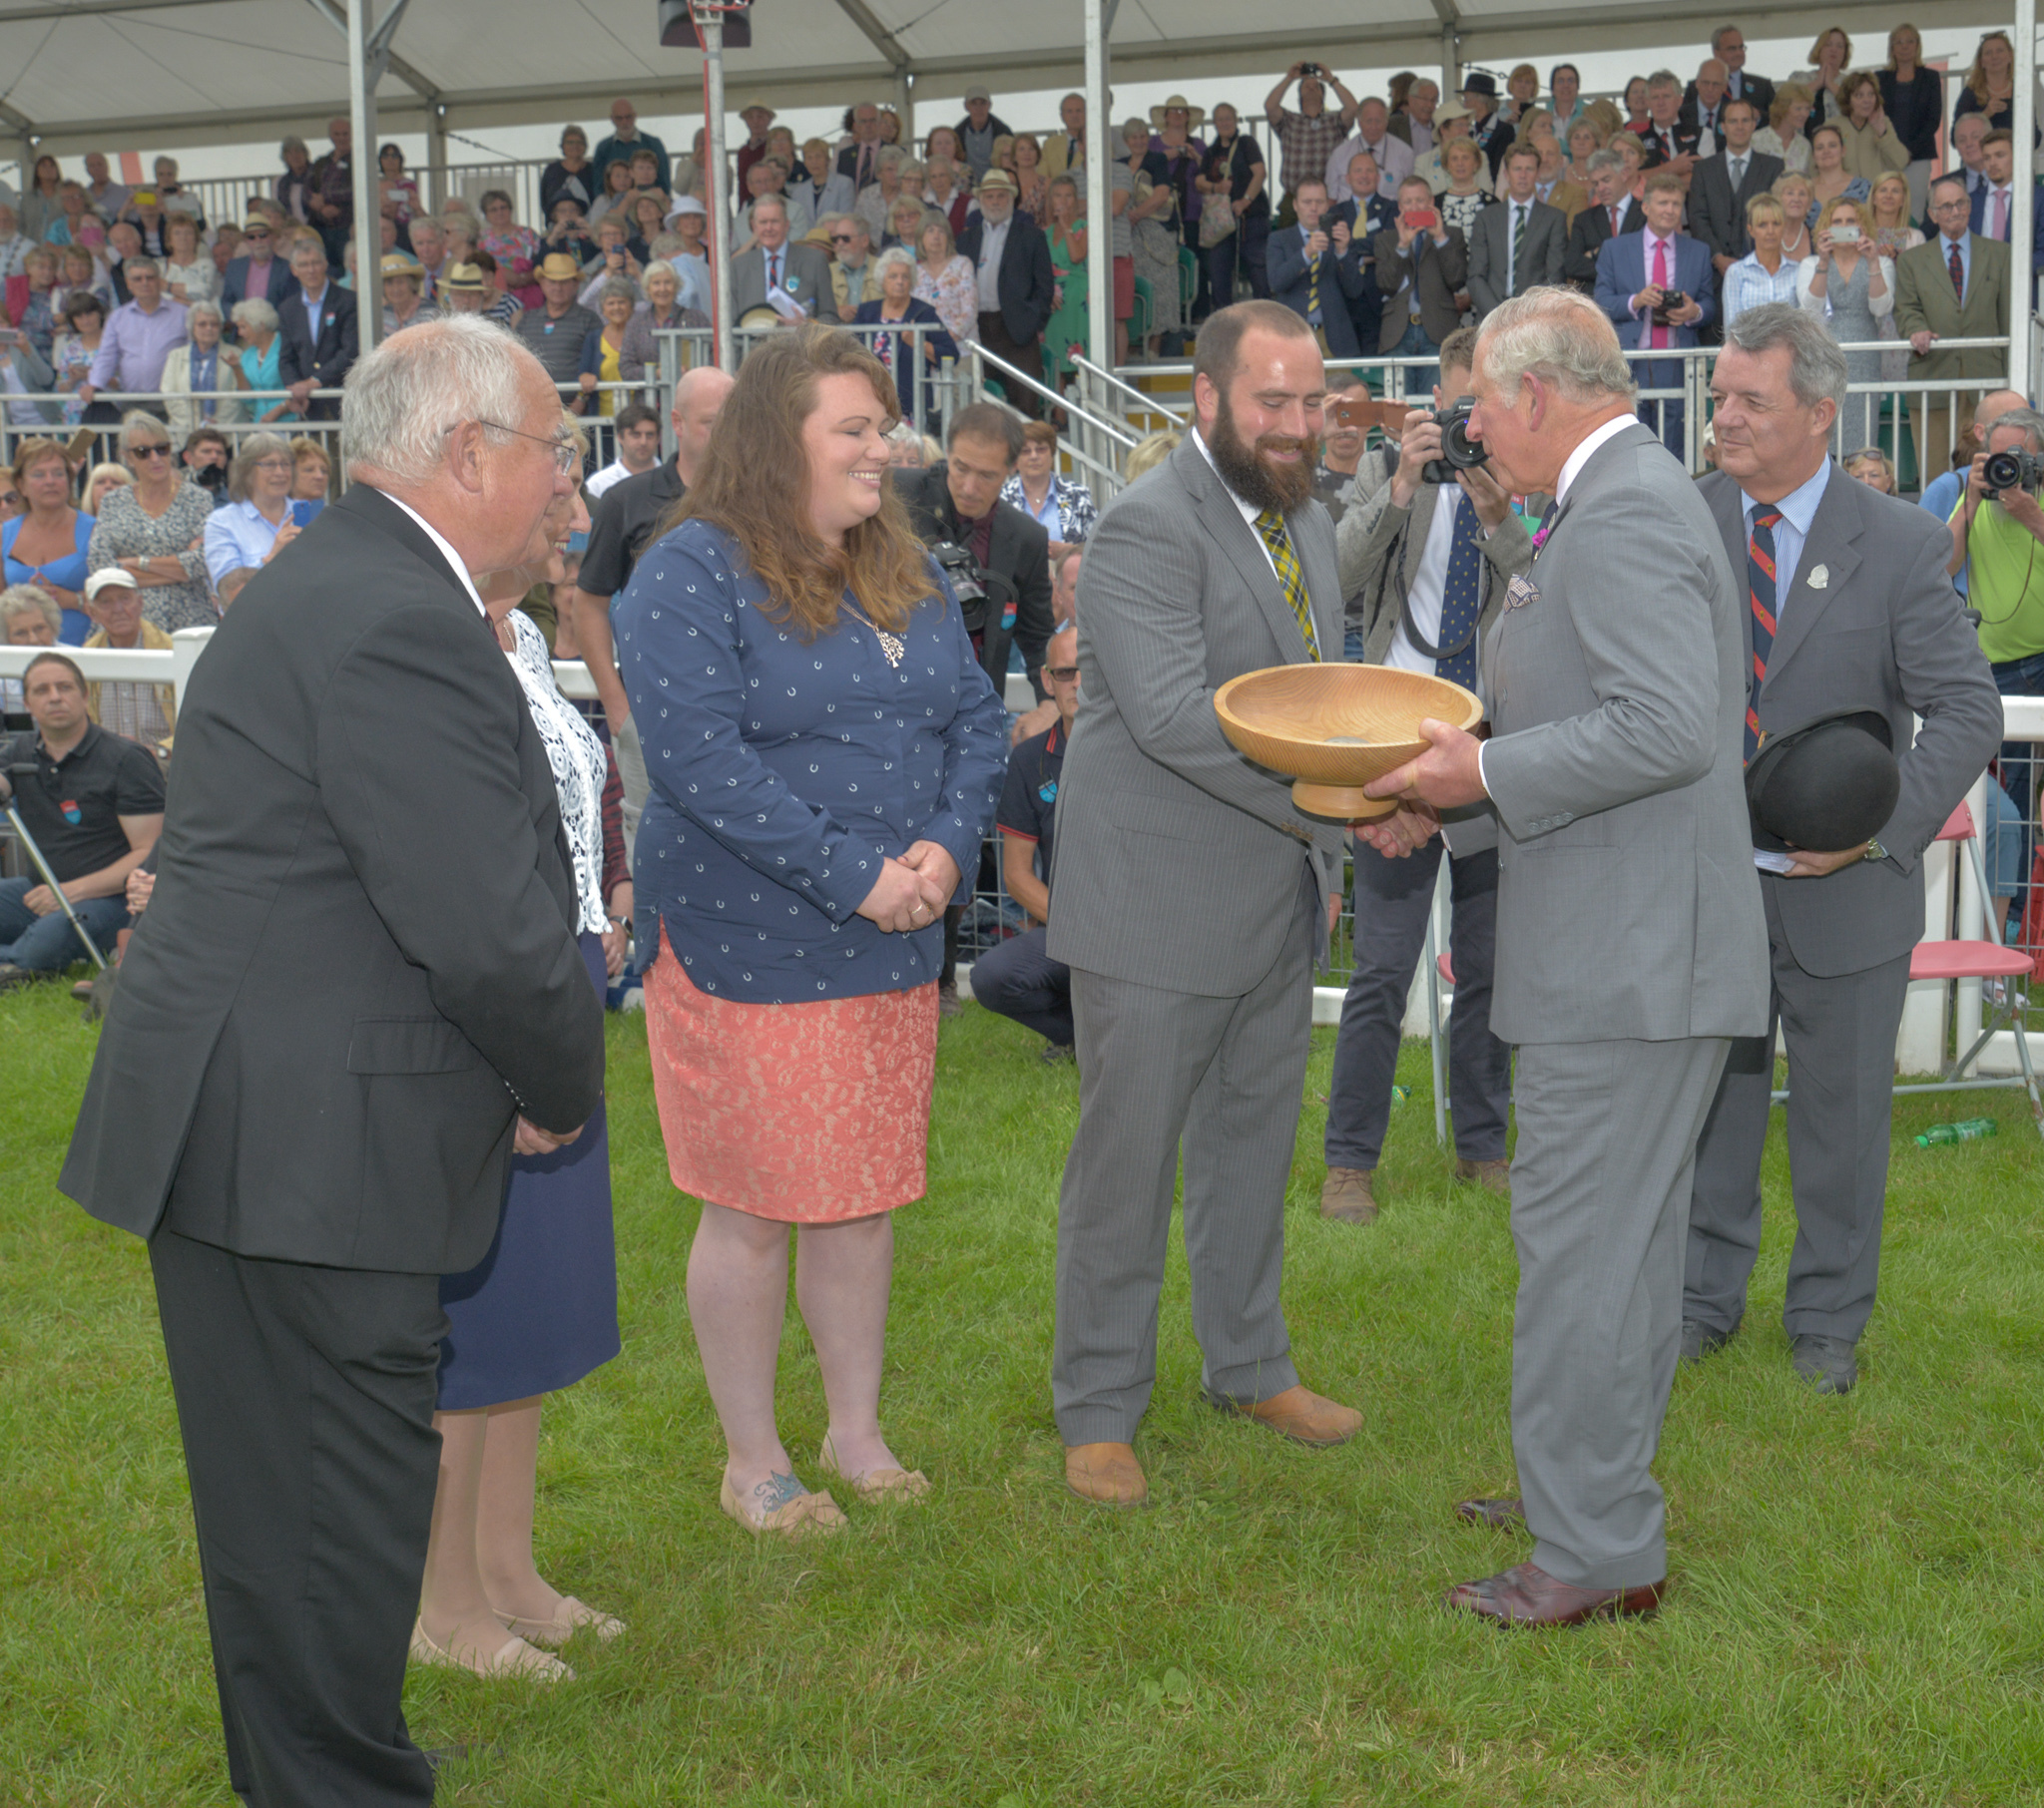 last year's Duke of Cornwall Award winners, the Flindall family from Chypraze Farm in West Cornwall being presented their award by His Royal Highness The Duke of Cornwall at last year's Royal Cornwall Show